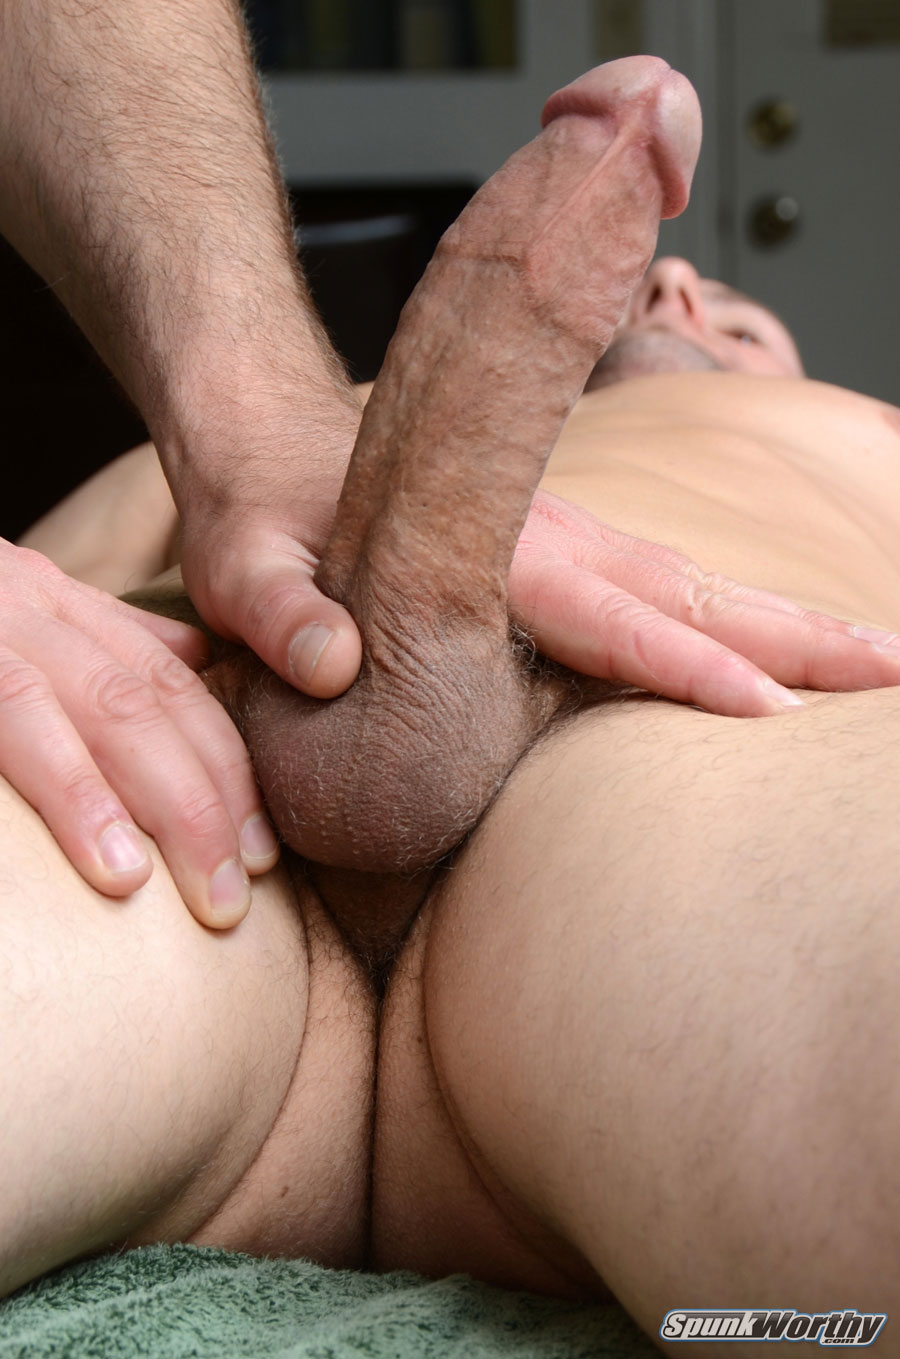 SpunkWorthy-Tommy-Straight-Guys-First-Blow-Job-From-A-Gay-Guy-Massage-Amateur-Gay-Porn-11 Amateur Straight Guy Gets His First Massage With A Happy Ending